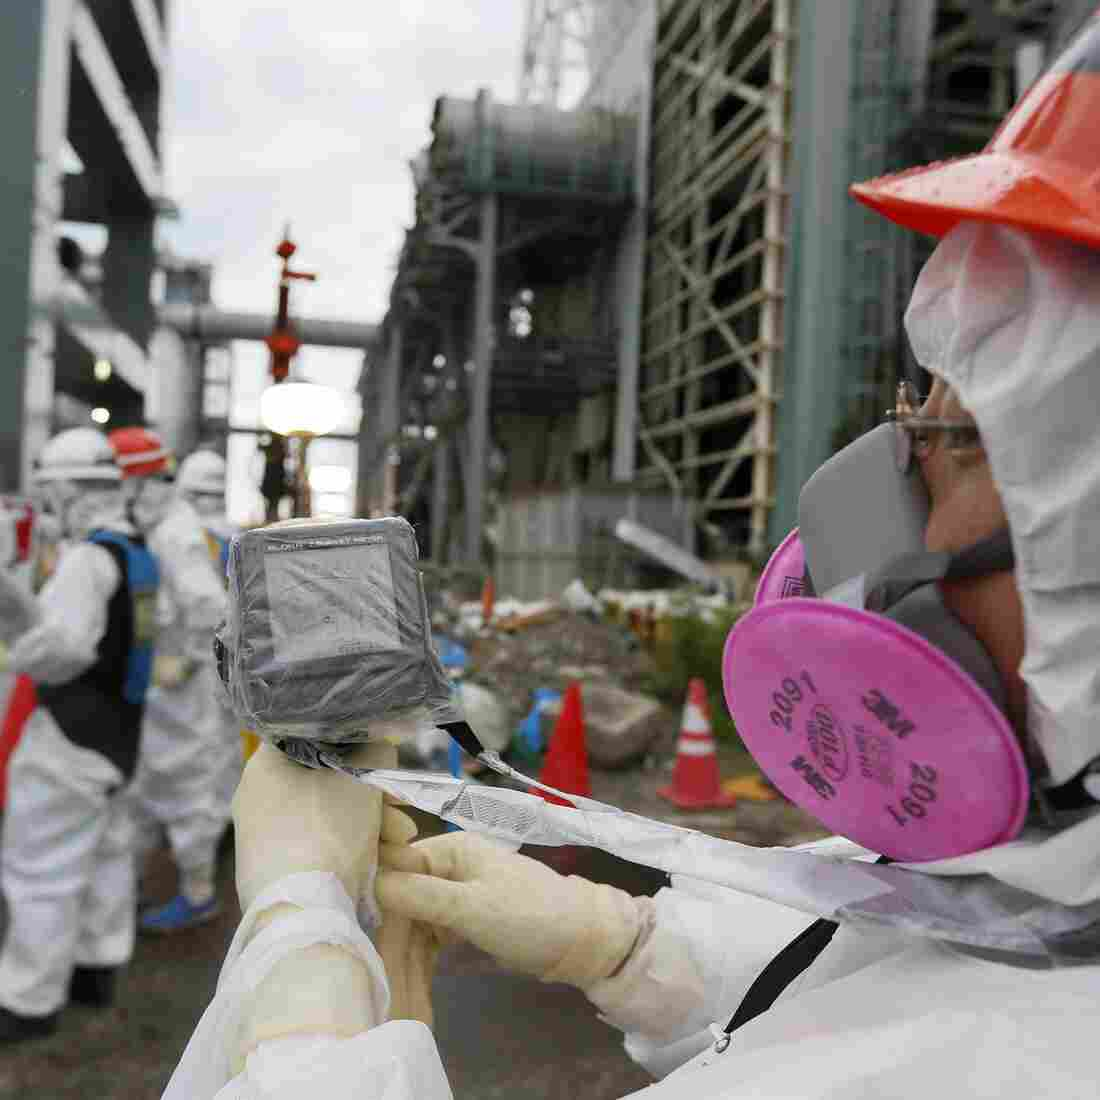 Water, Soil And Radiation: Why Fukushima Will Take Decades To Clean Up